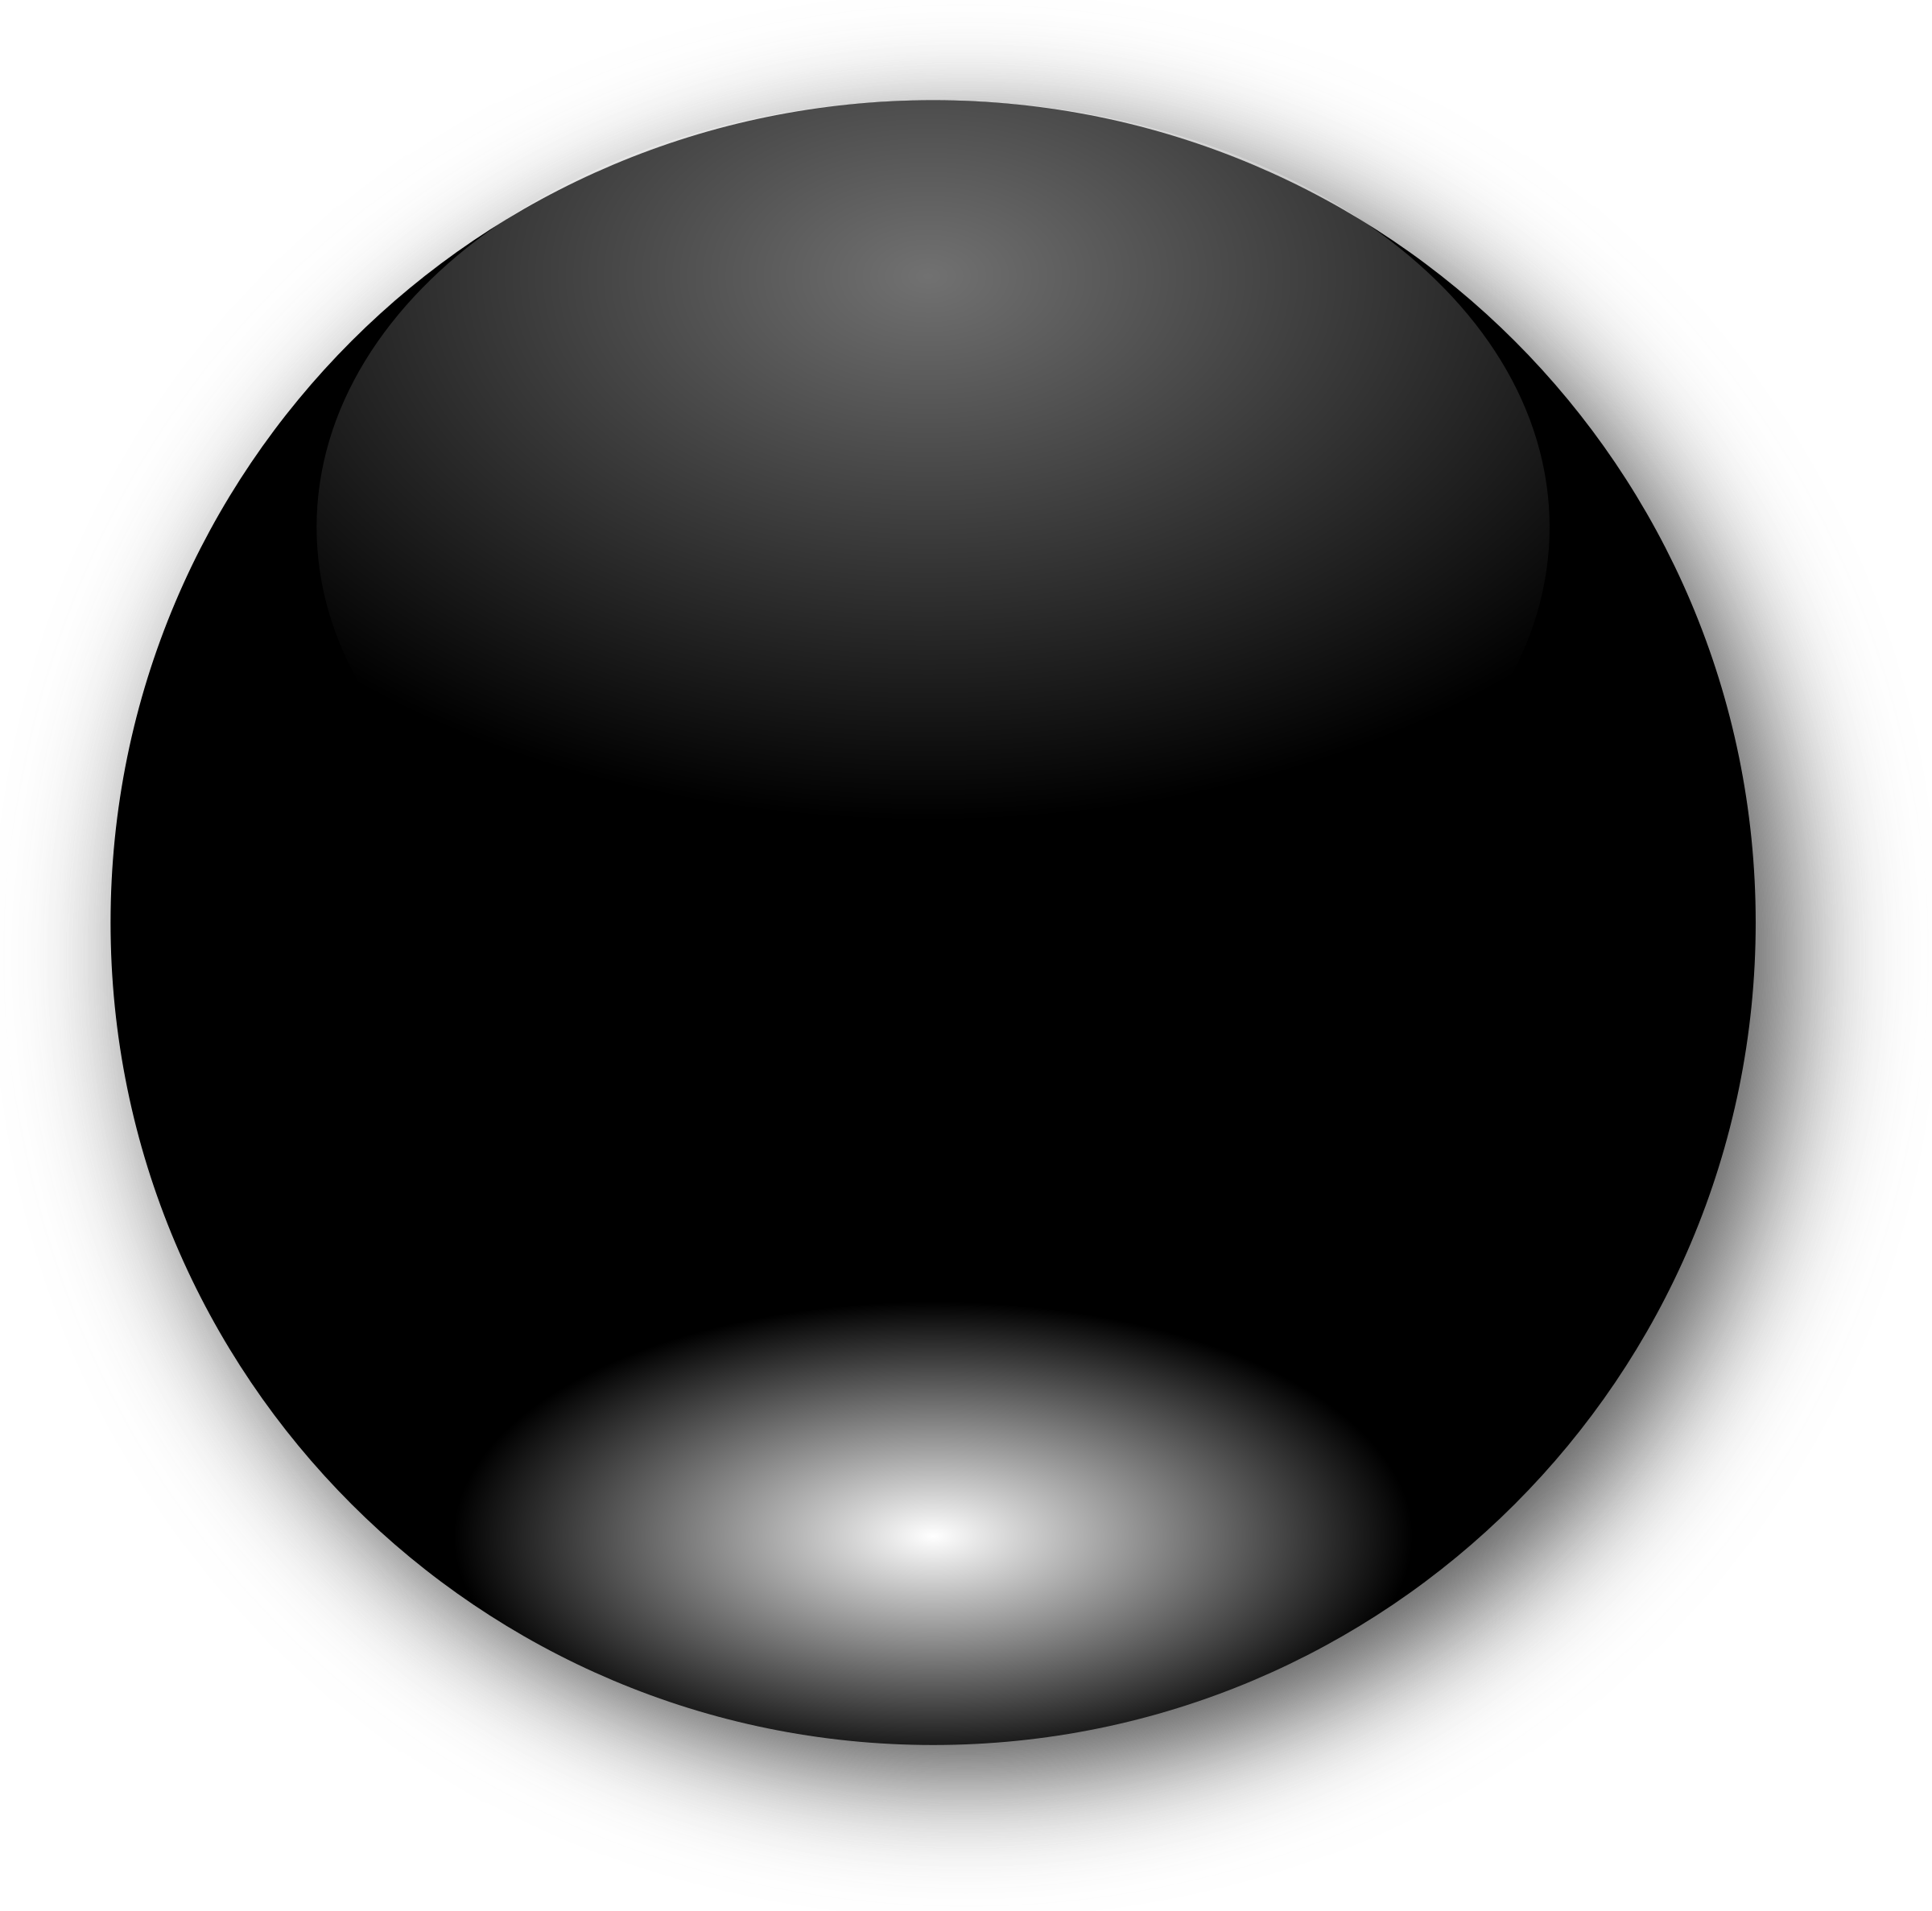 jpg black and white download Round black big image. Button clipart different shape.